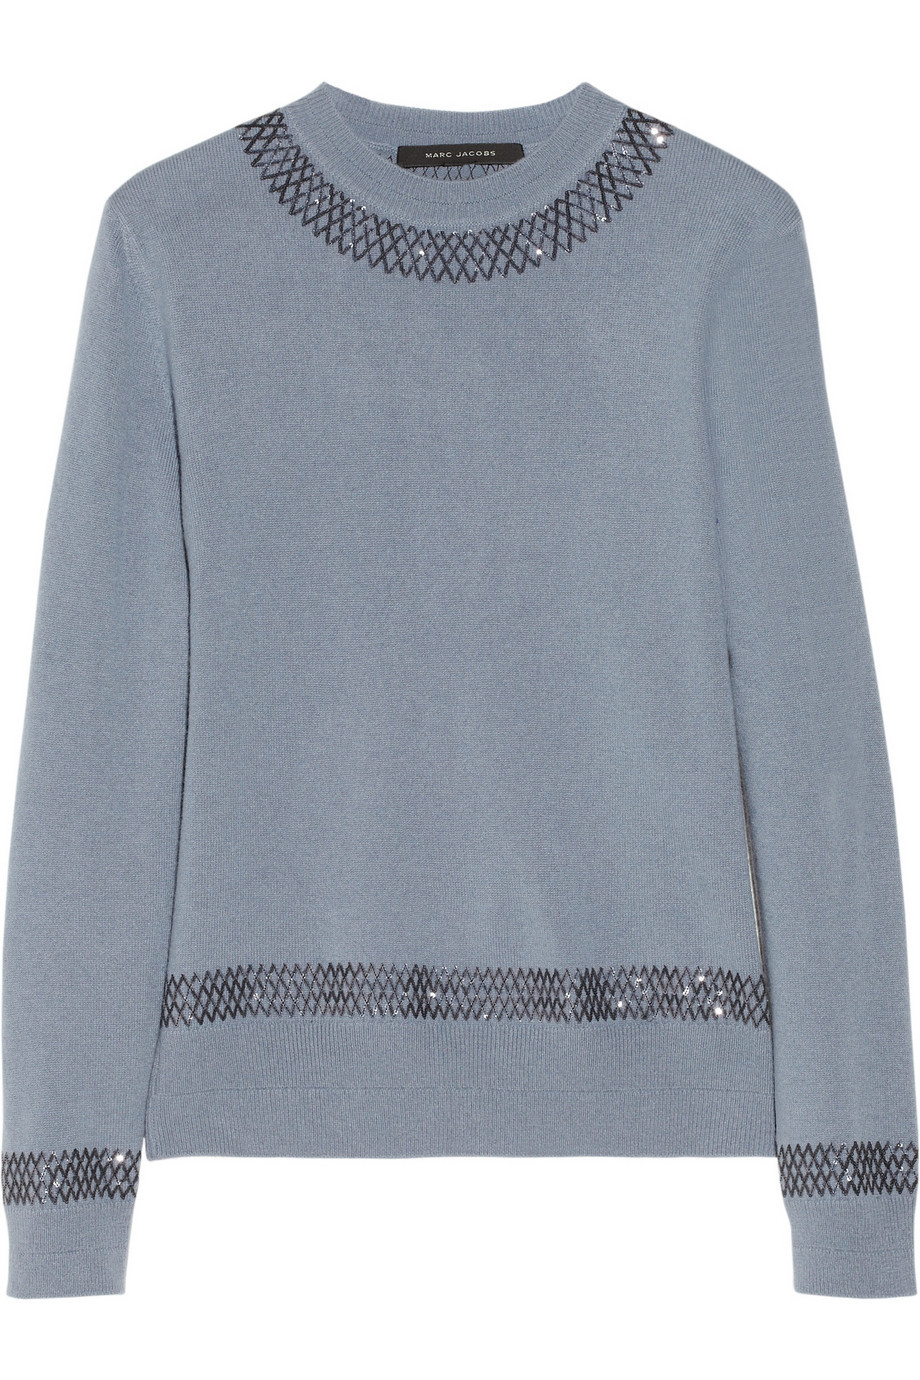 Marc Jacobs   Sequin-embellished cashmere sweater   NET-A-PORTER.COM_files.jpg